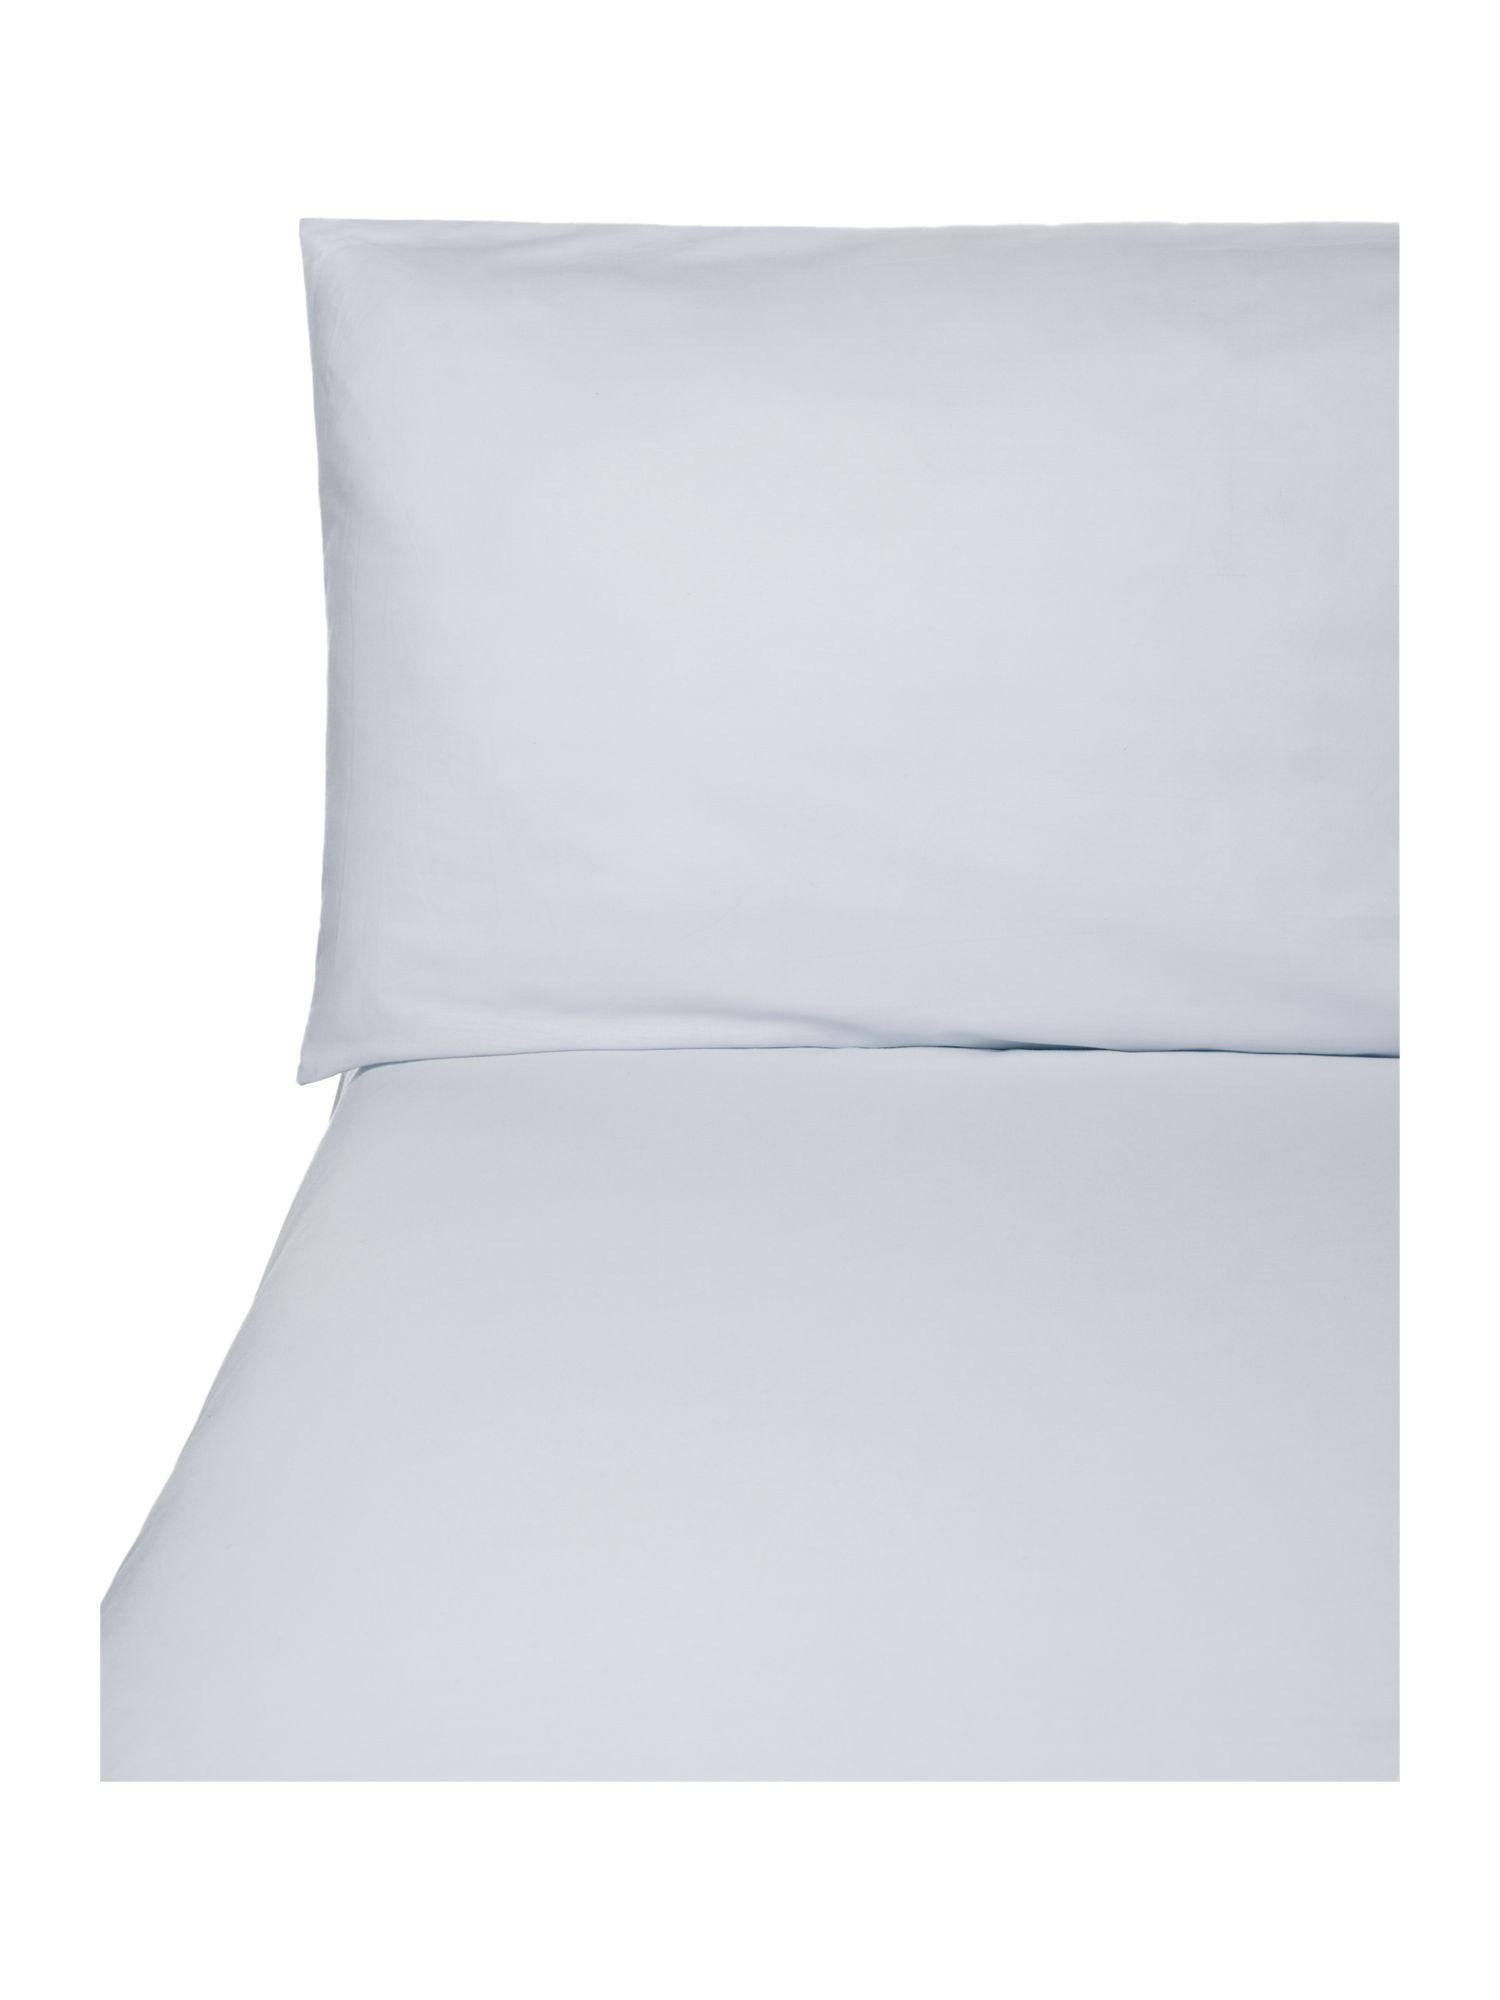 100% percale bed linen in duck egg